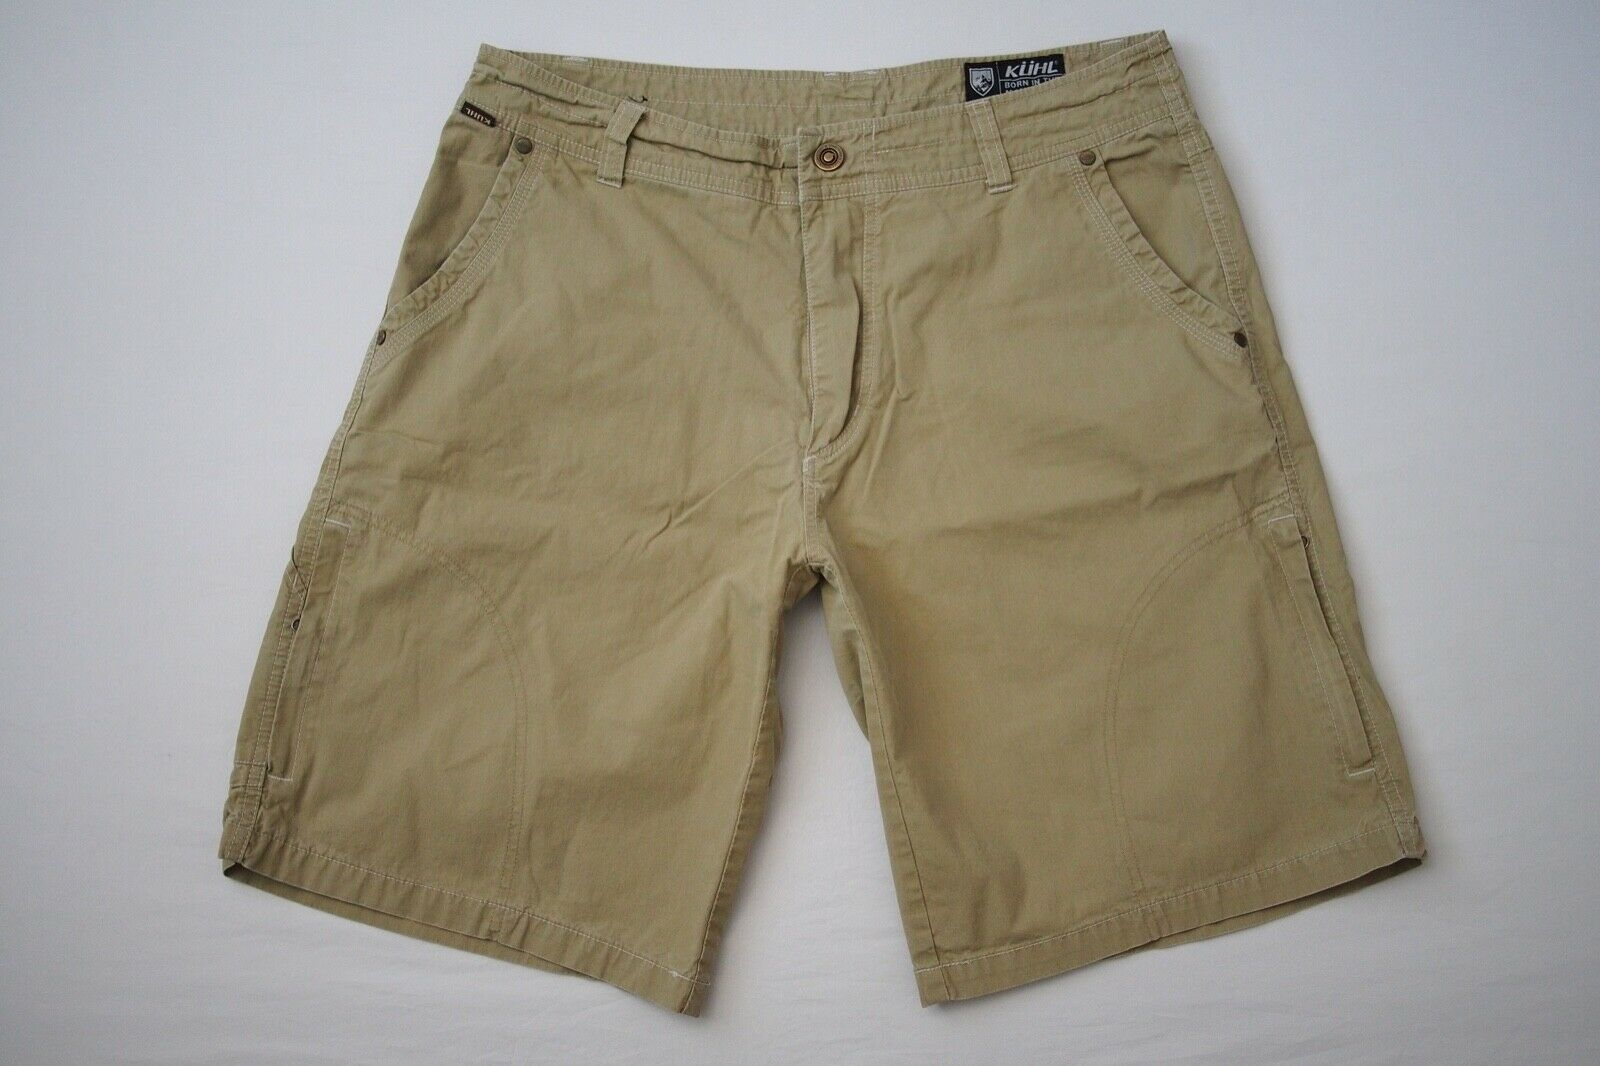 Kuhl Khaki Brown Vintage Patina Dye Hiking Trekking Outdoor Work Shorts Mens 34